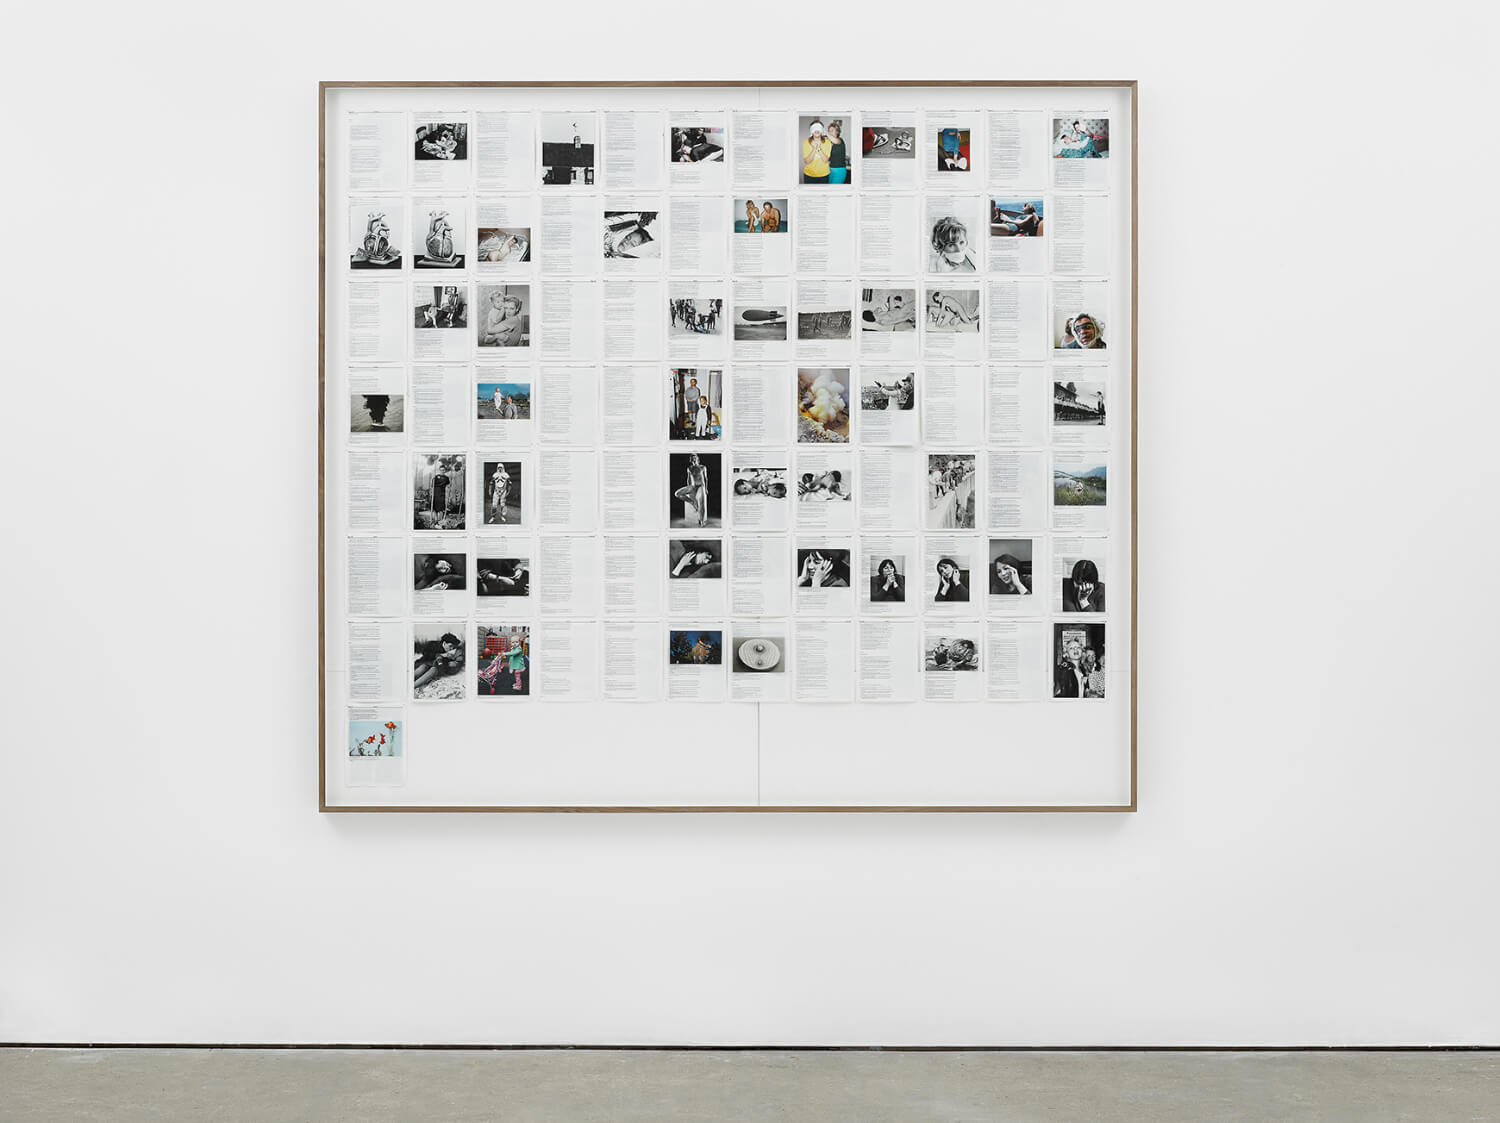 Psalms, Divine Violence, 2013, King James Bible, Hahnemühle print, brass pins, 1893mm x 2117mm, Image courtesy of Lisson Gallery, London